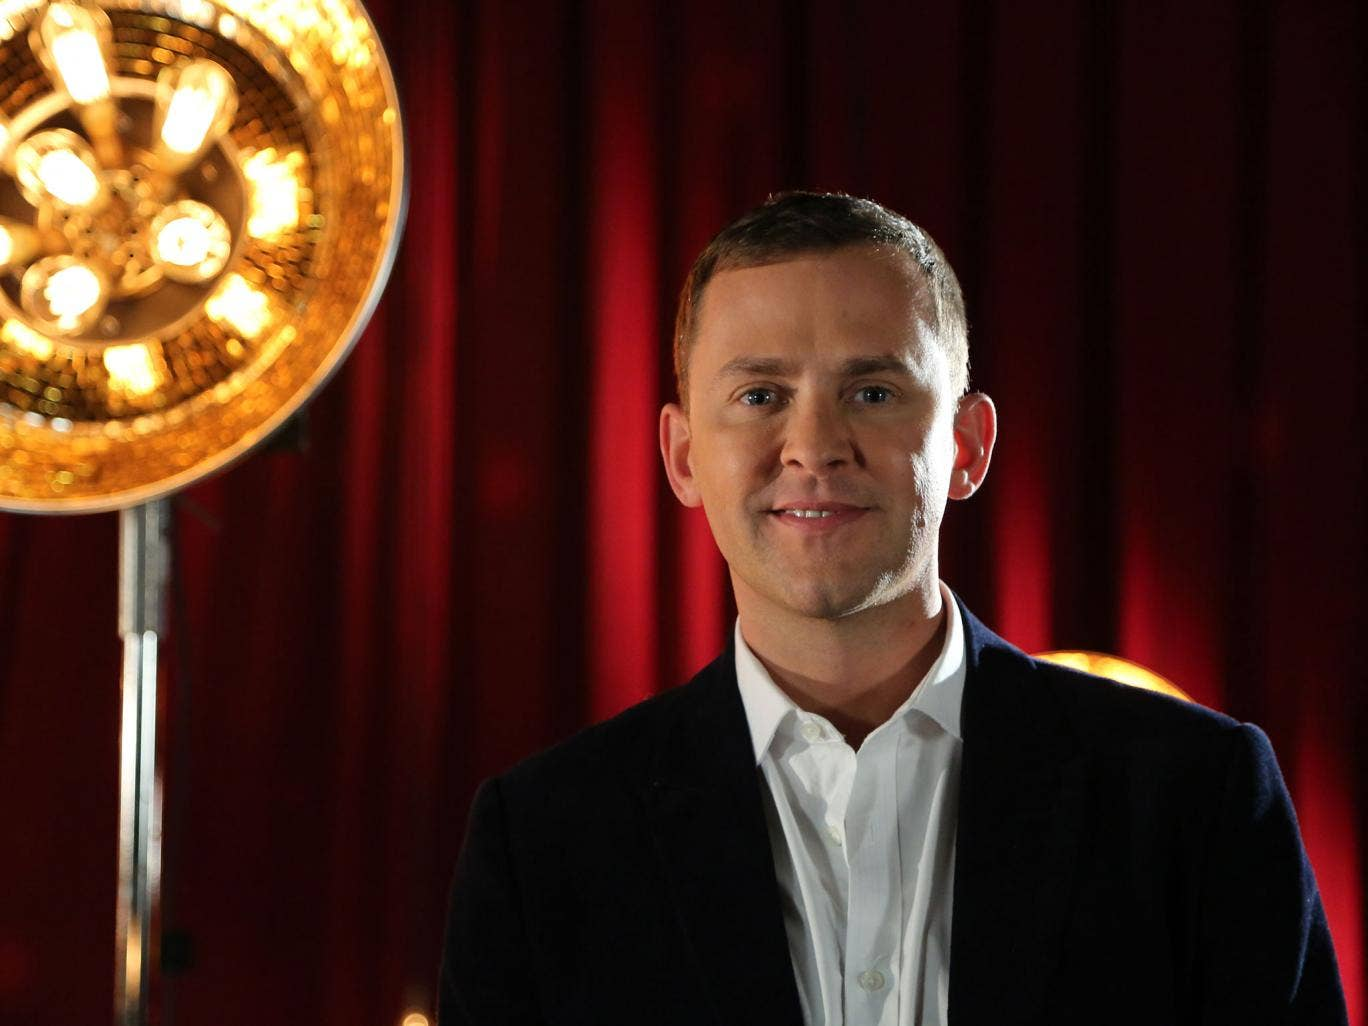 Radio presenter Scott Mills will be hitting the Strictly Come Dancing ballroom